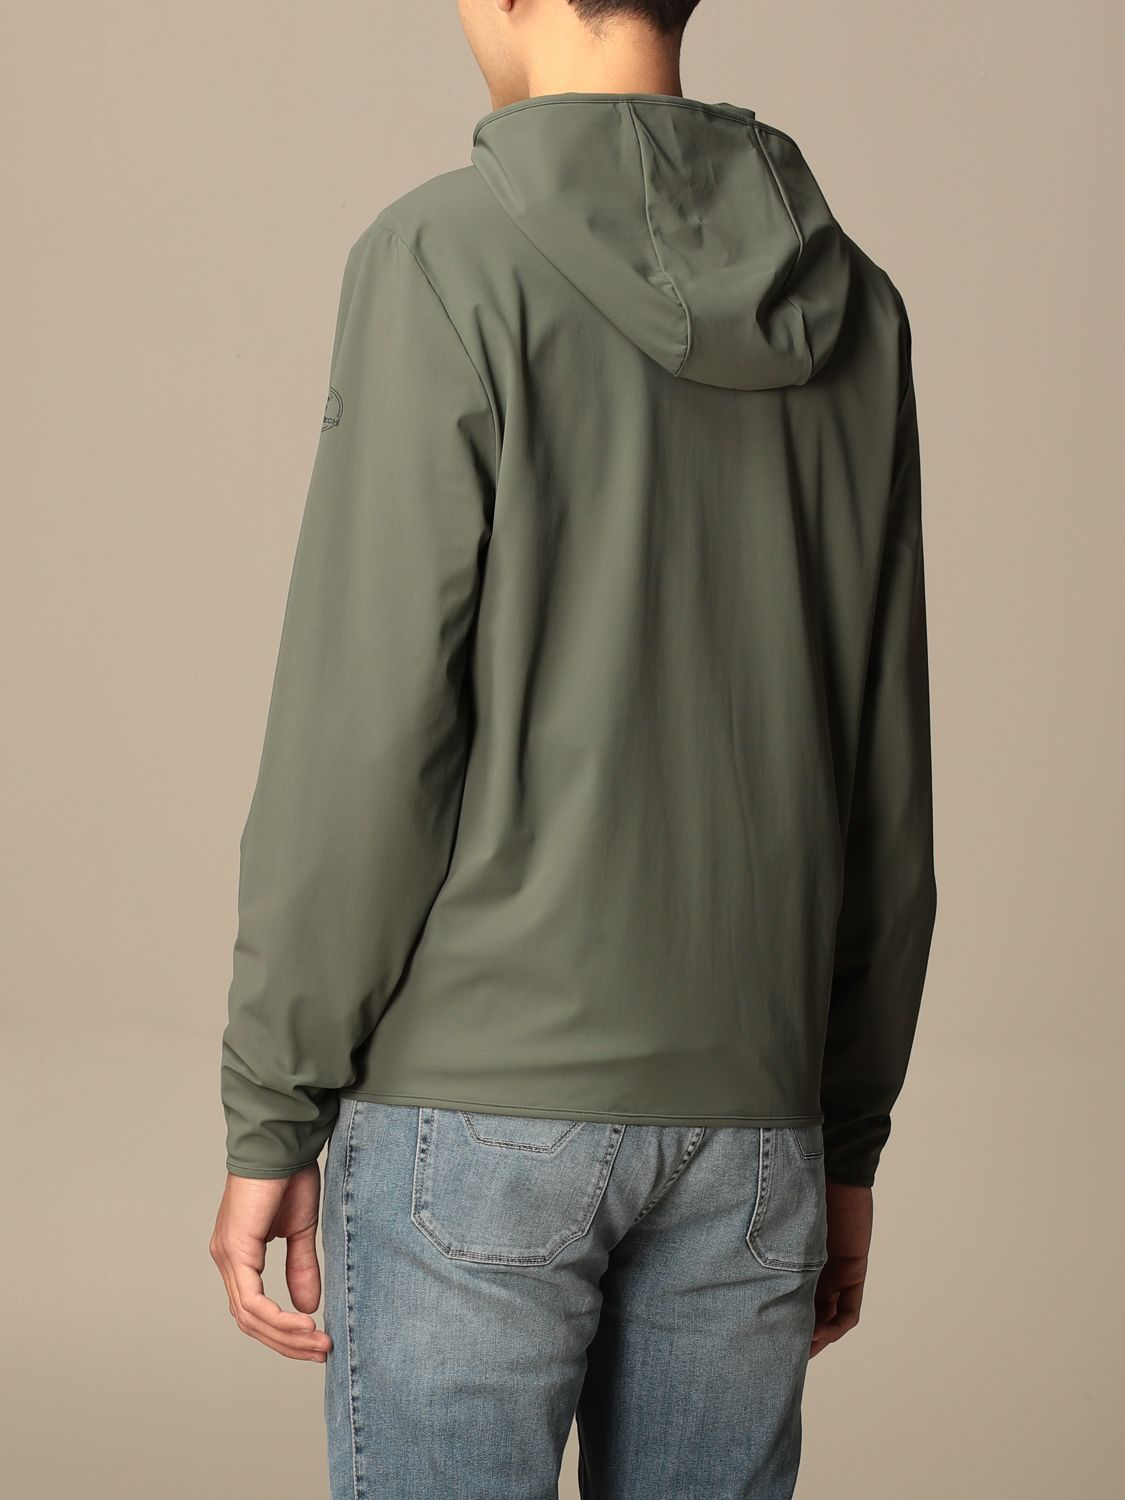 Giacca Pro-Tech By Save The Duck: Giacca con cappuccio Pro-Tech by Save The Duck militare 2